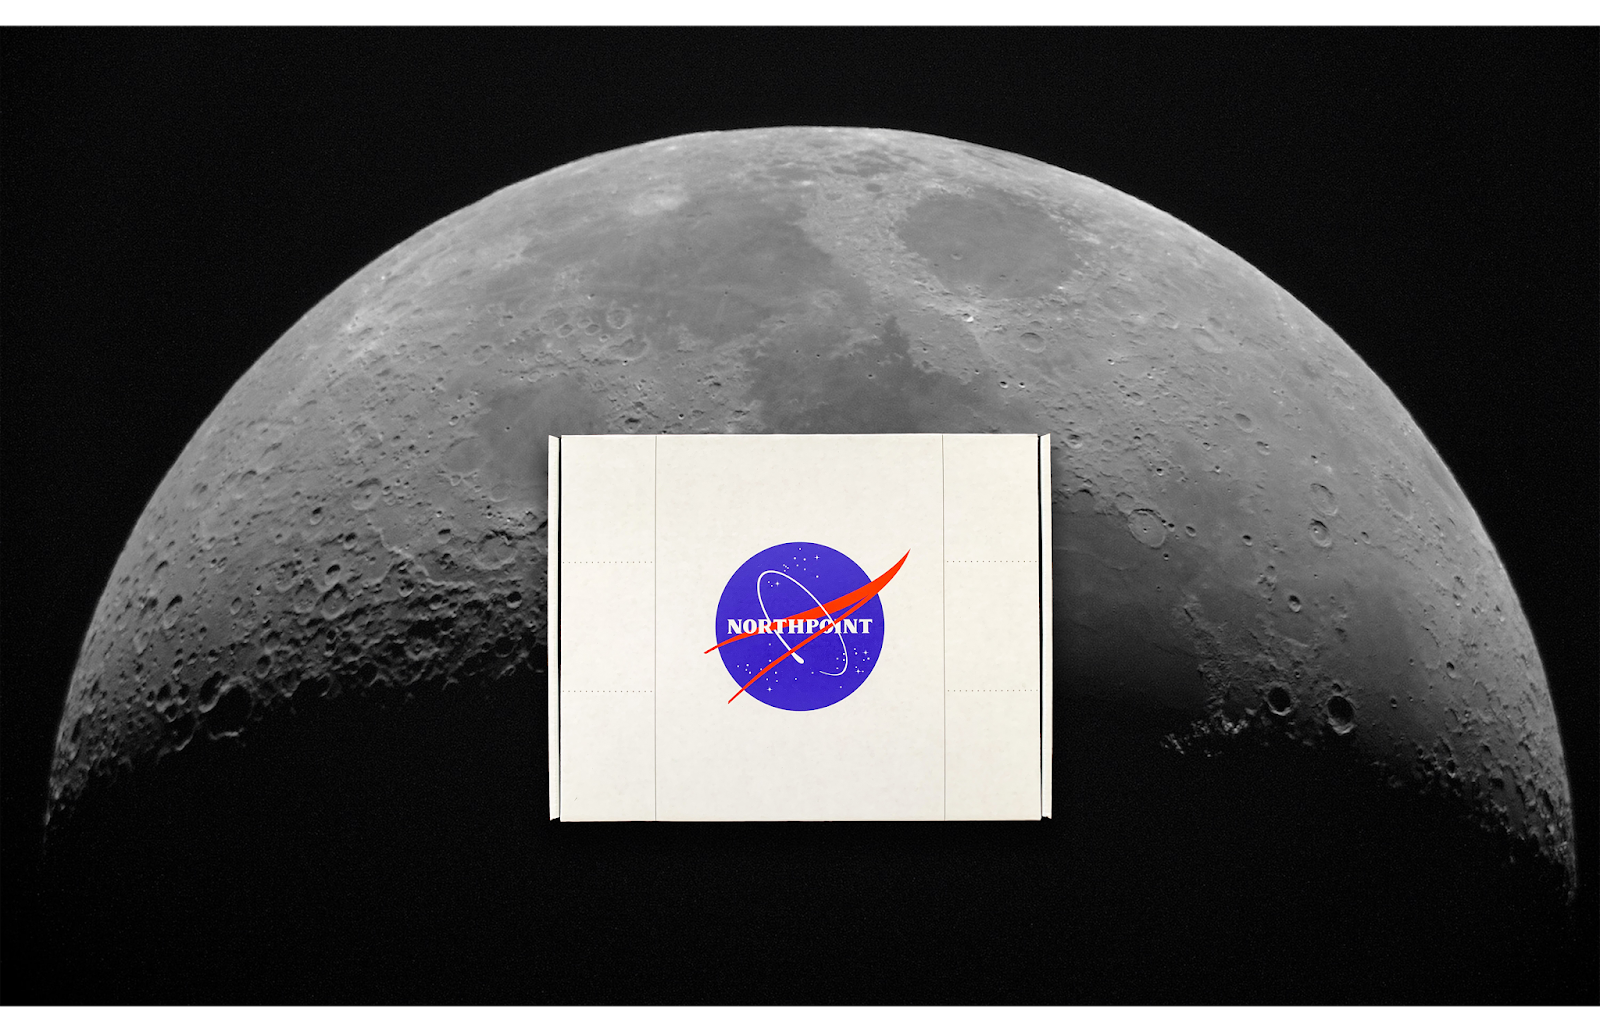 An image of the moon with a box designed to look like a spaceship in front of it